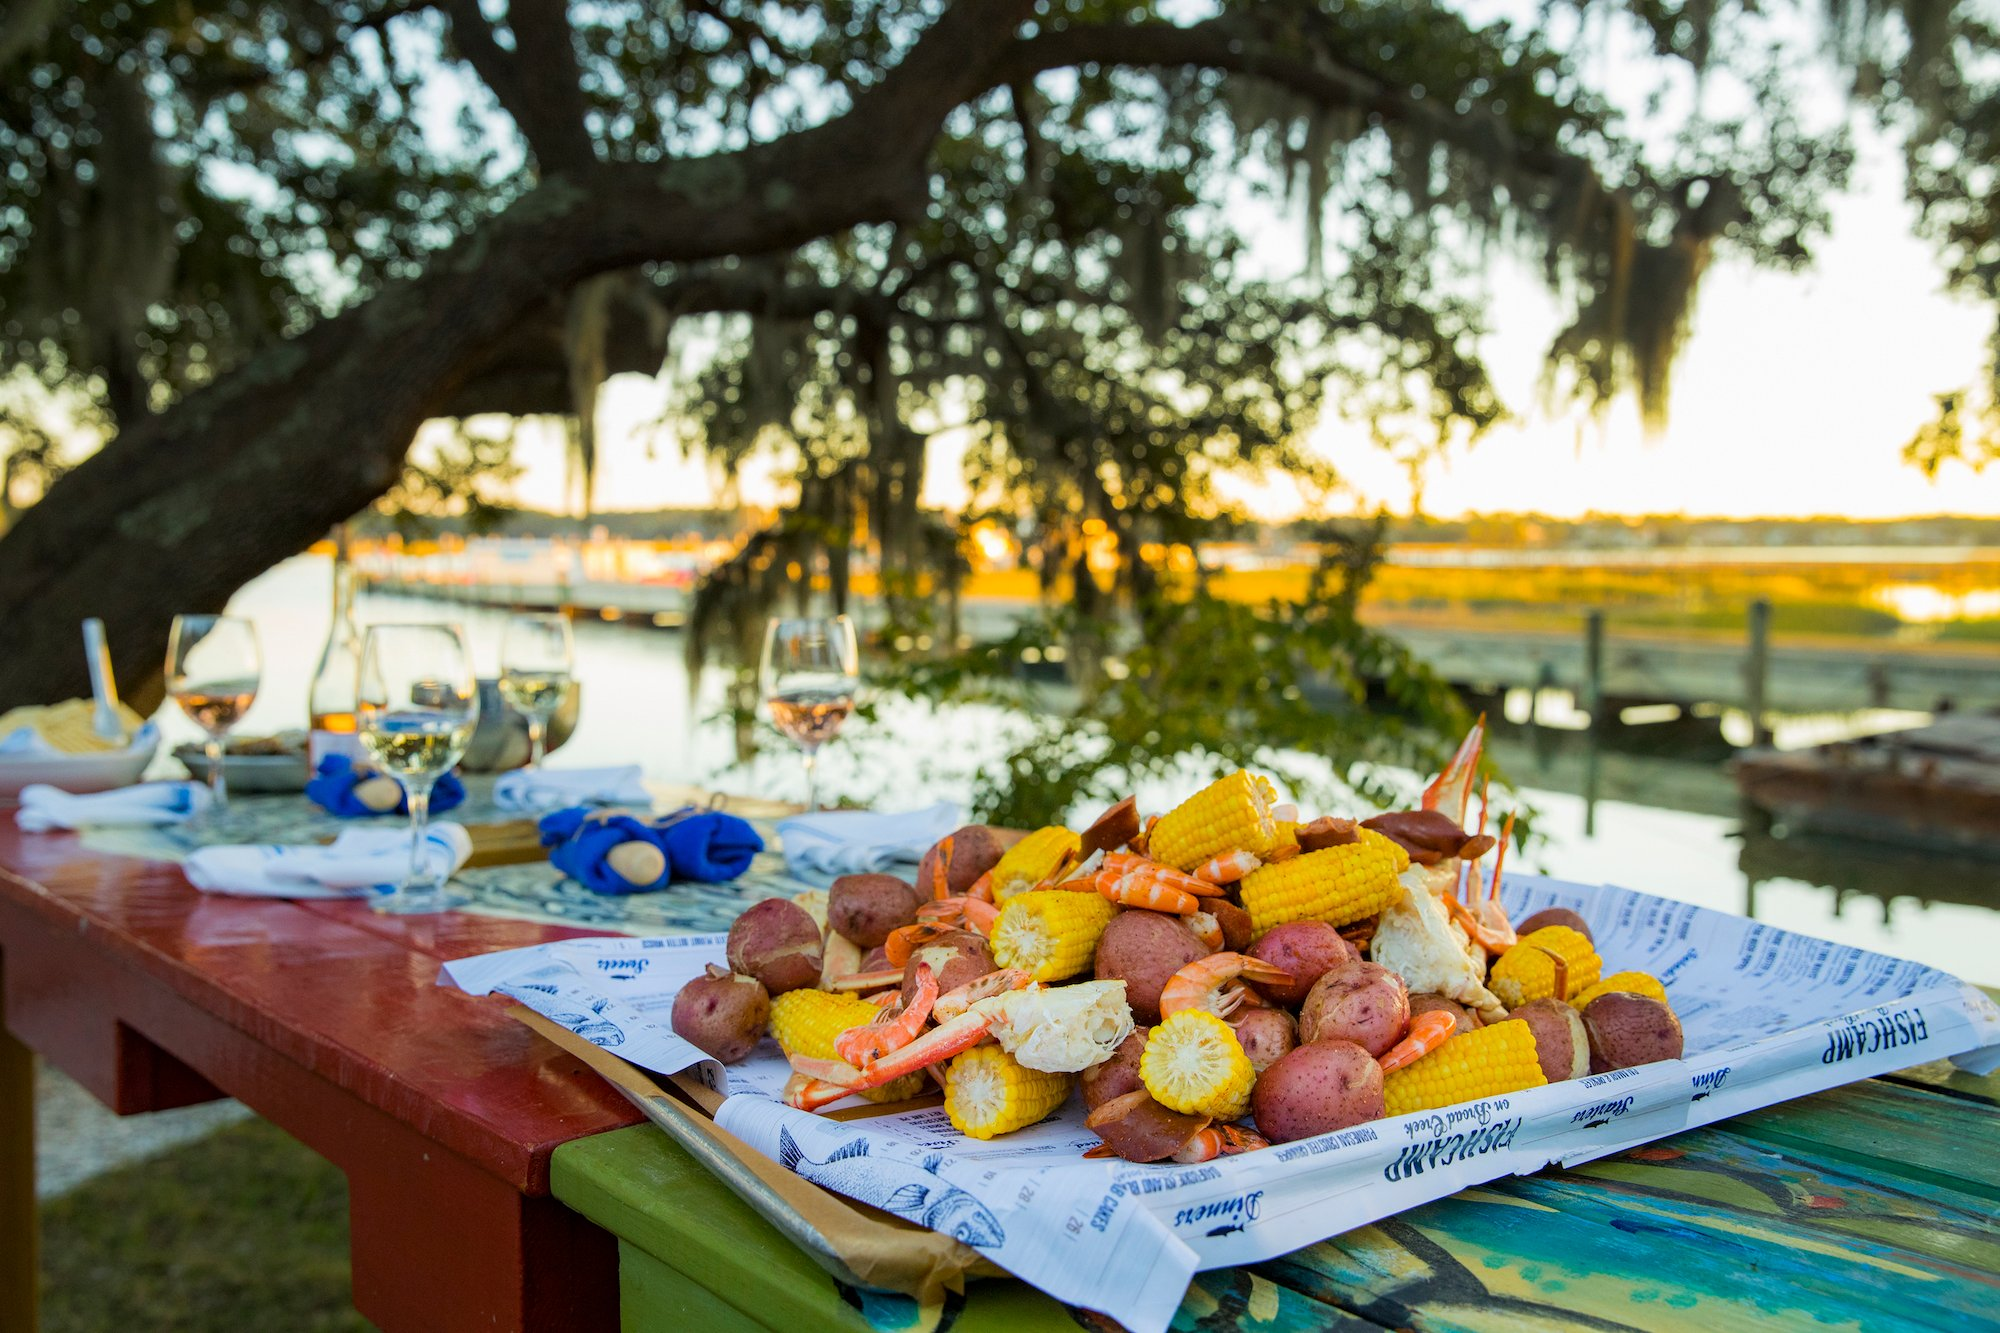 Lowcountry boil on picnic table